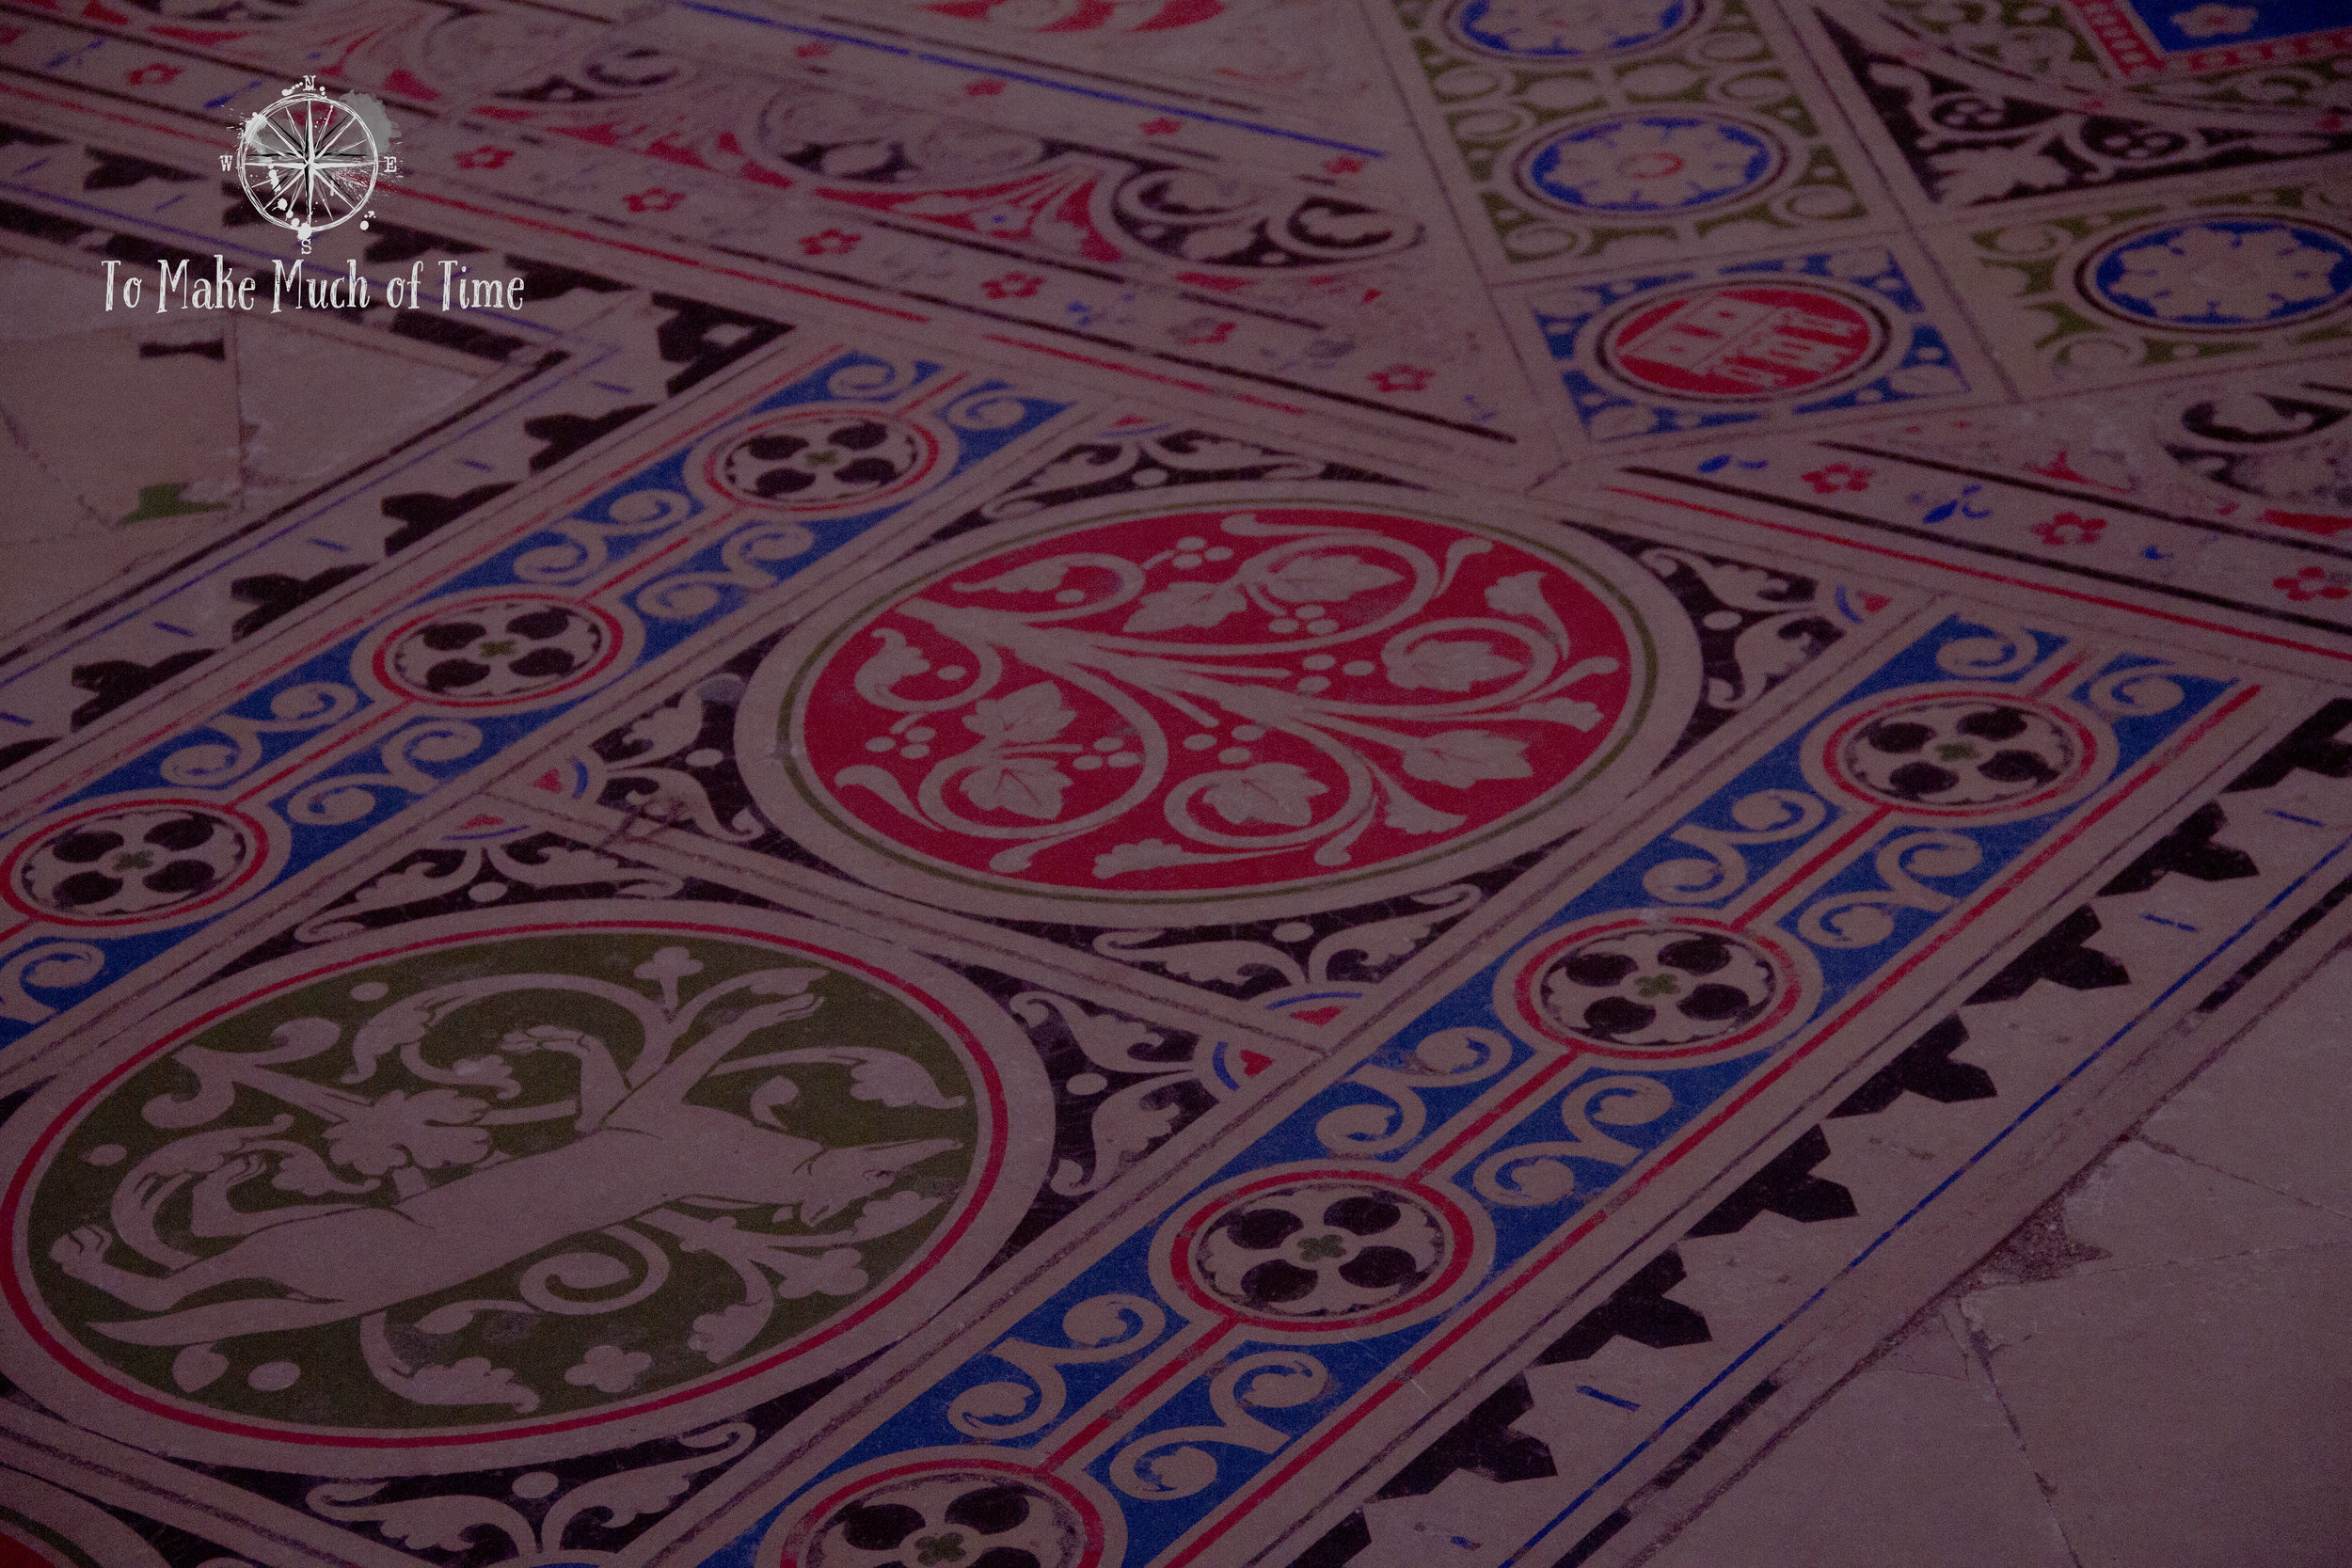 Even the floors of Saint-Chapelle are decorated. You'll notice the pinkish hue from the blue light streaming through the windows.